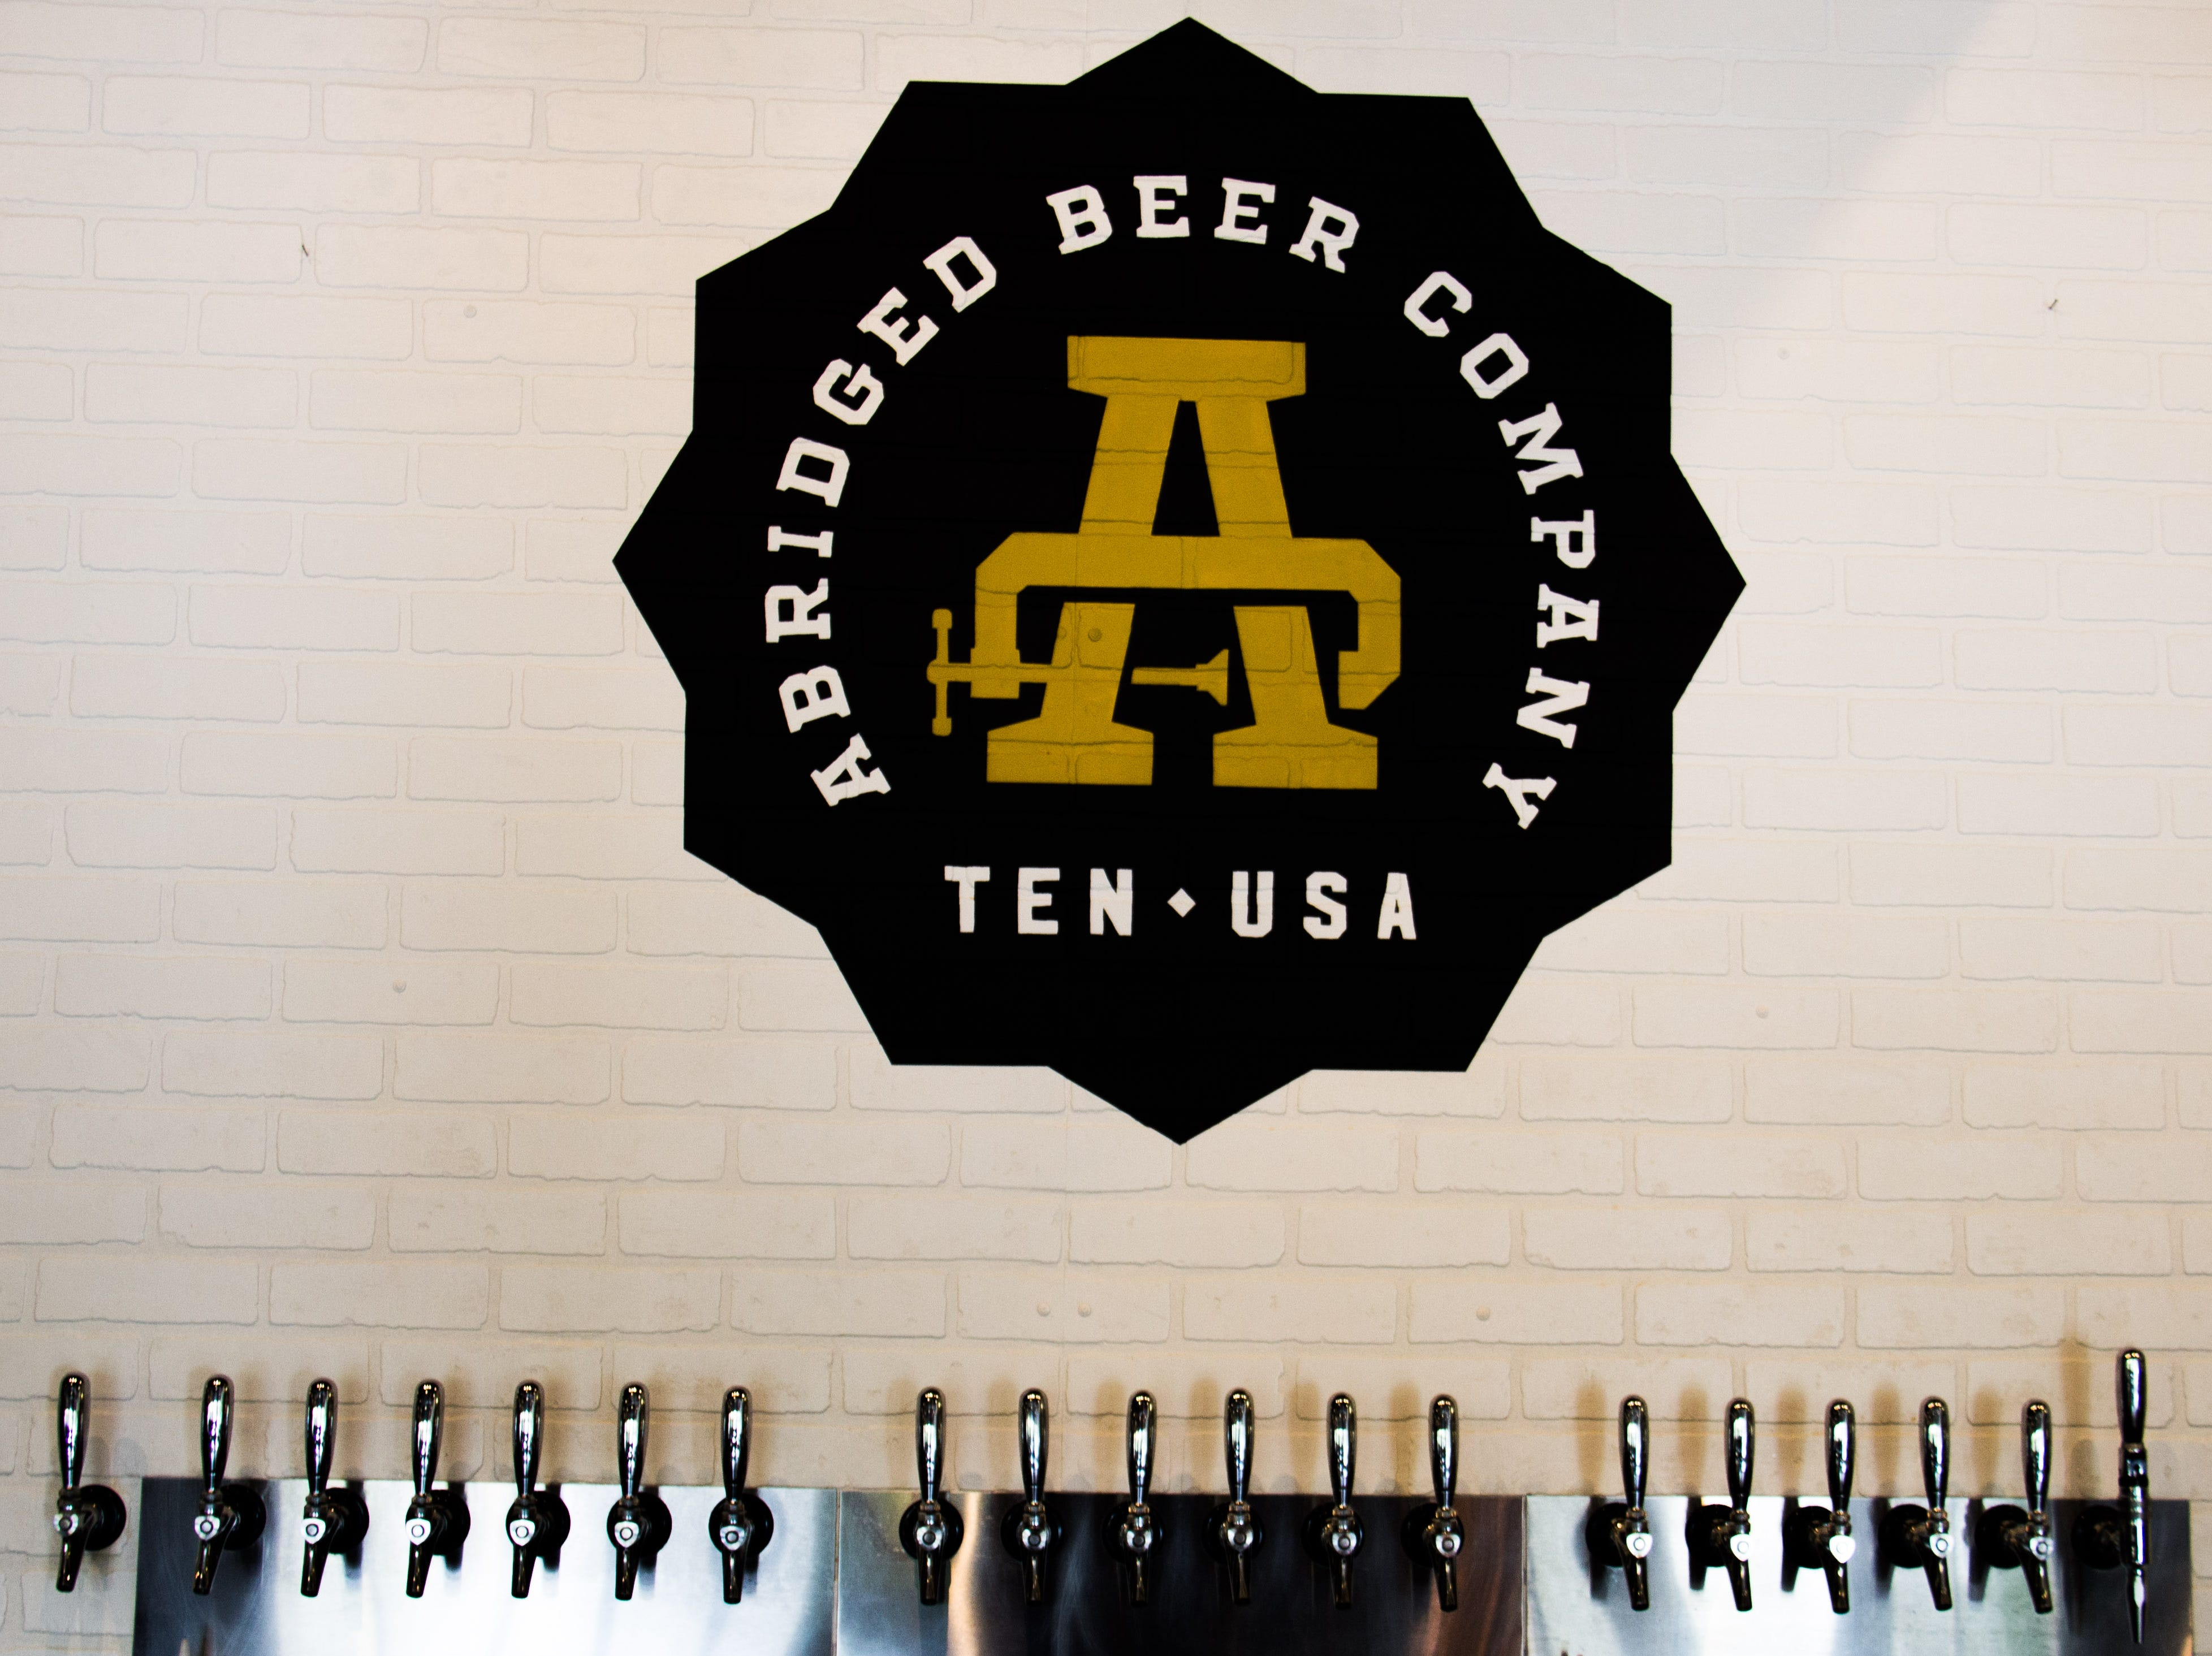 Abridged Beer Co. has a variety of beers on tap at its current location but will specialize in sour beers at a new facility planned to open in spring 2019.